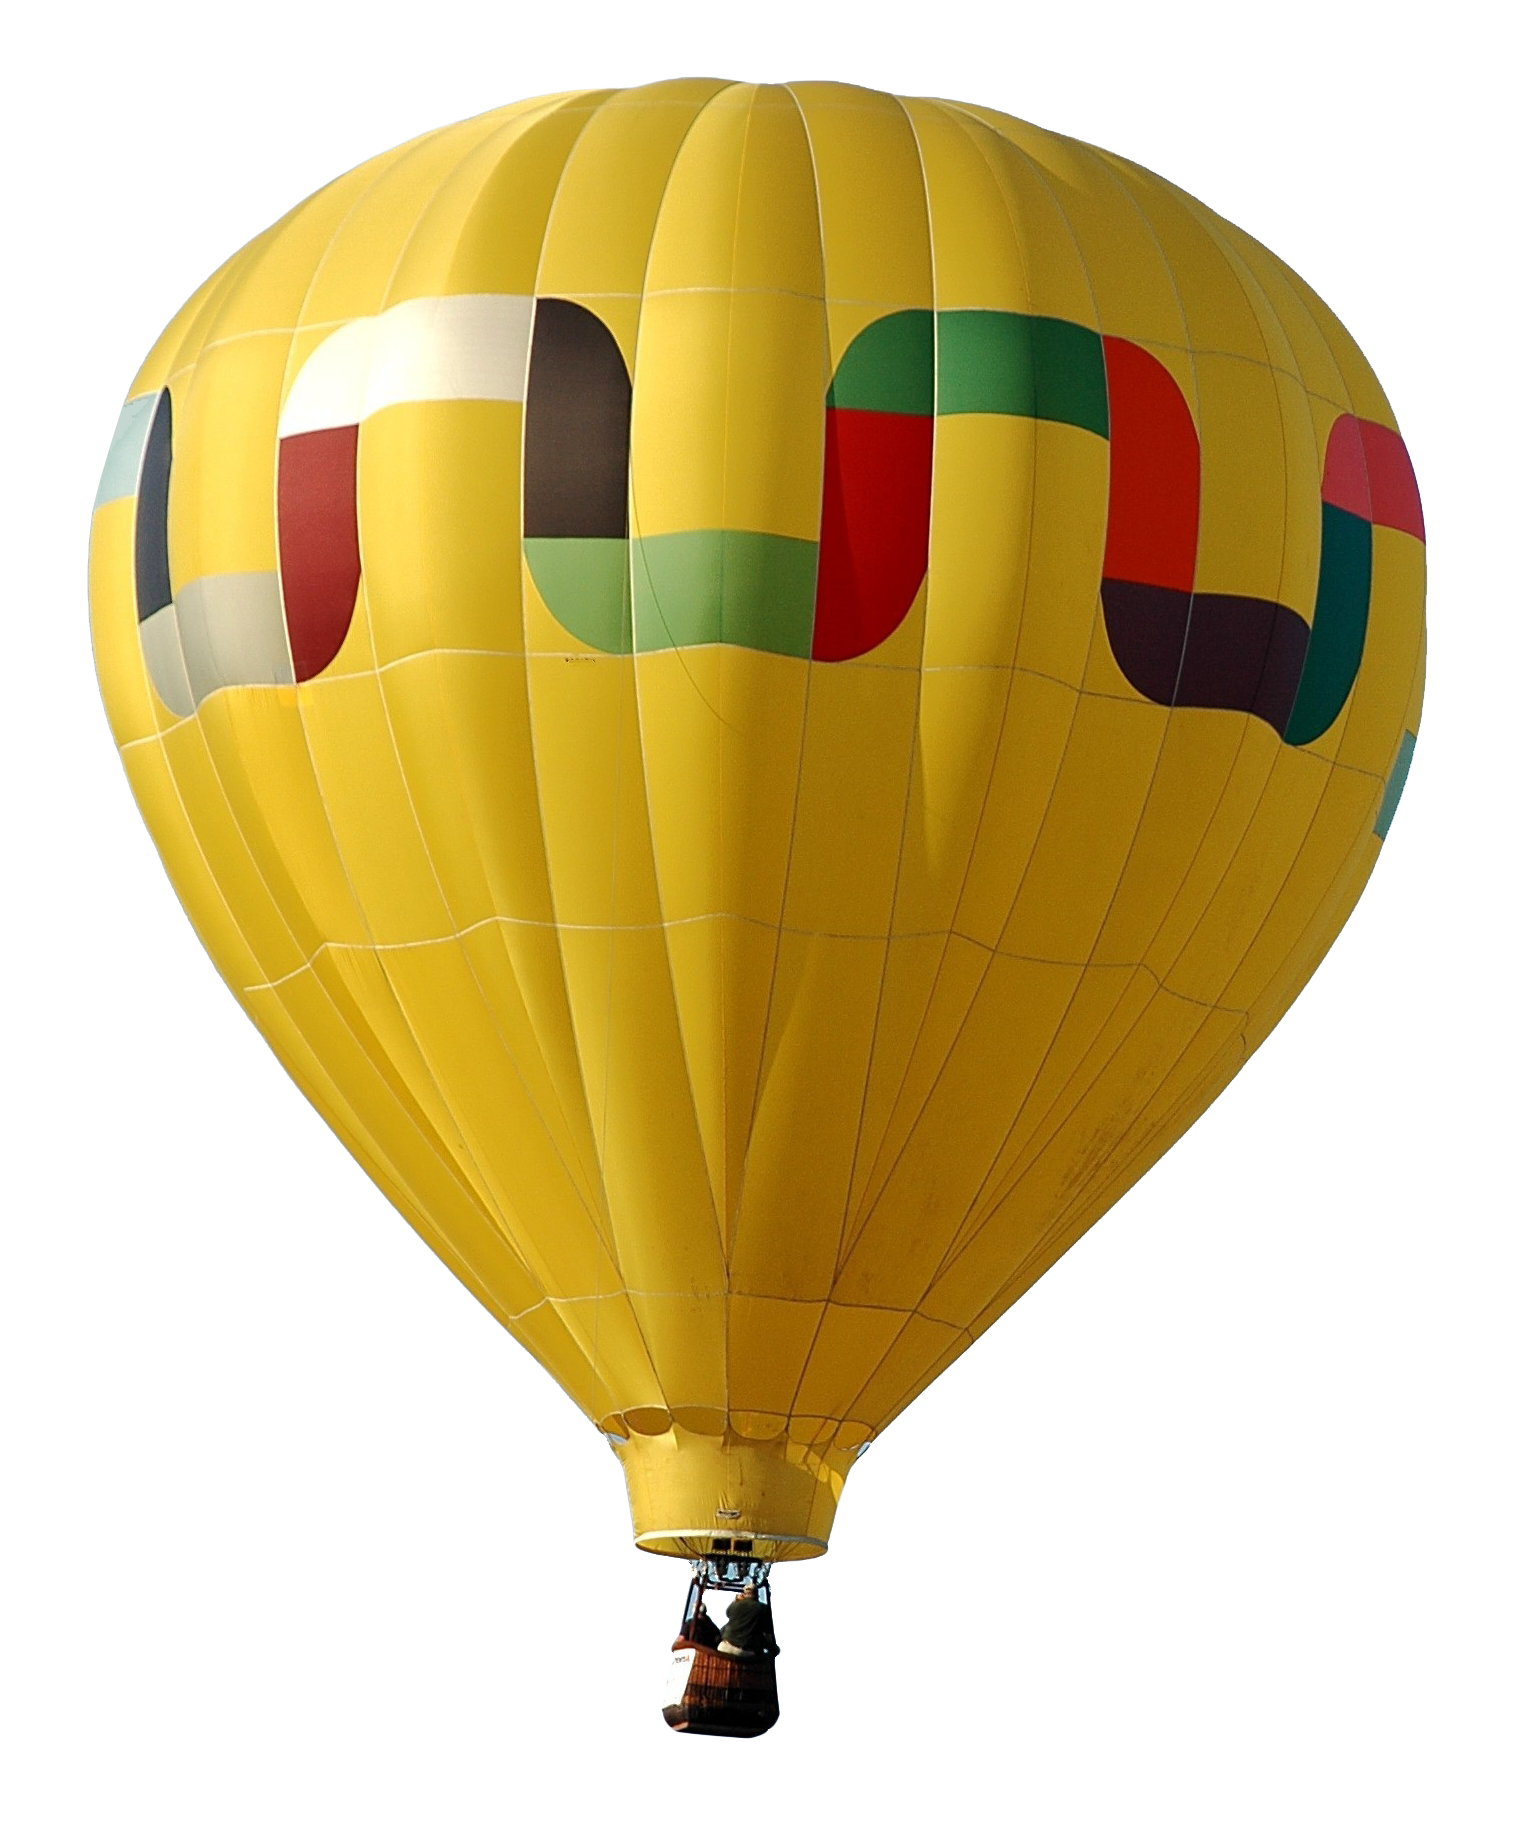 Yellow Air Balloon High-quality Png image #46759